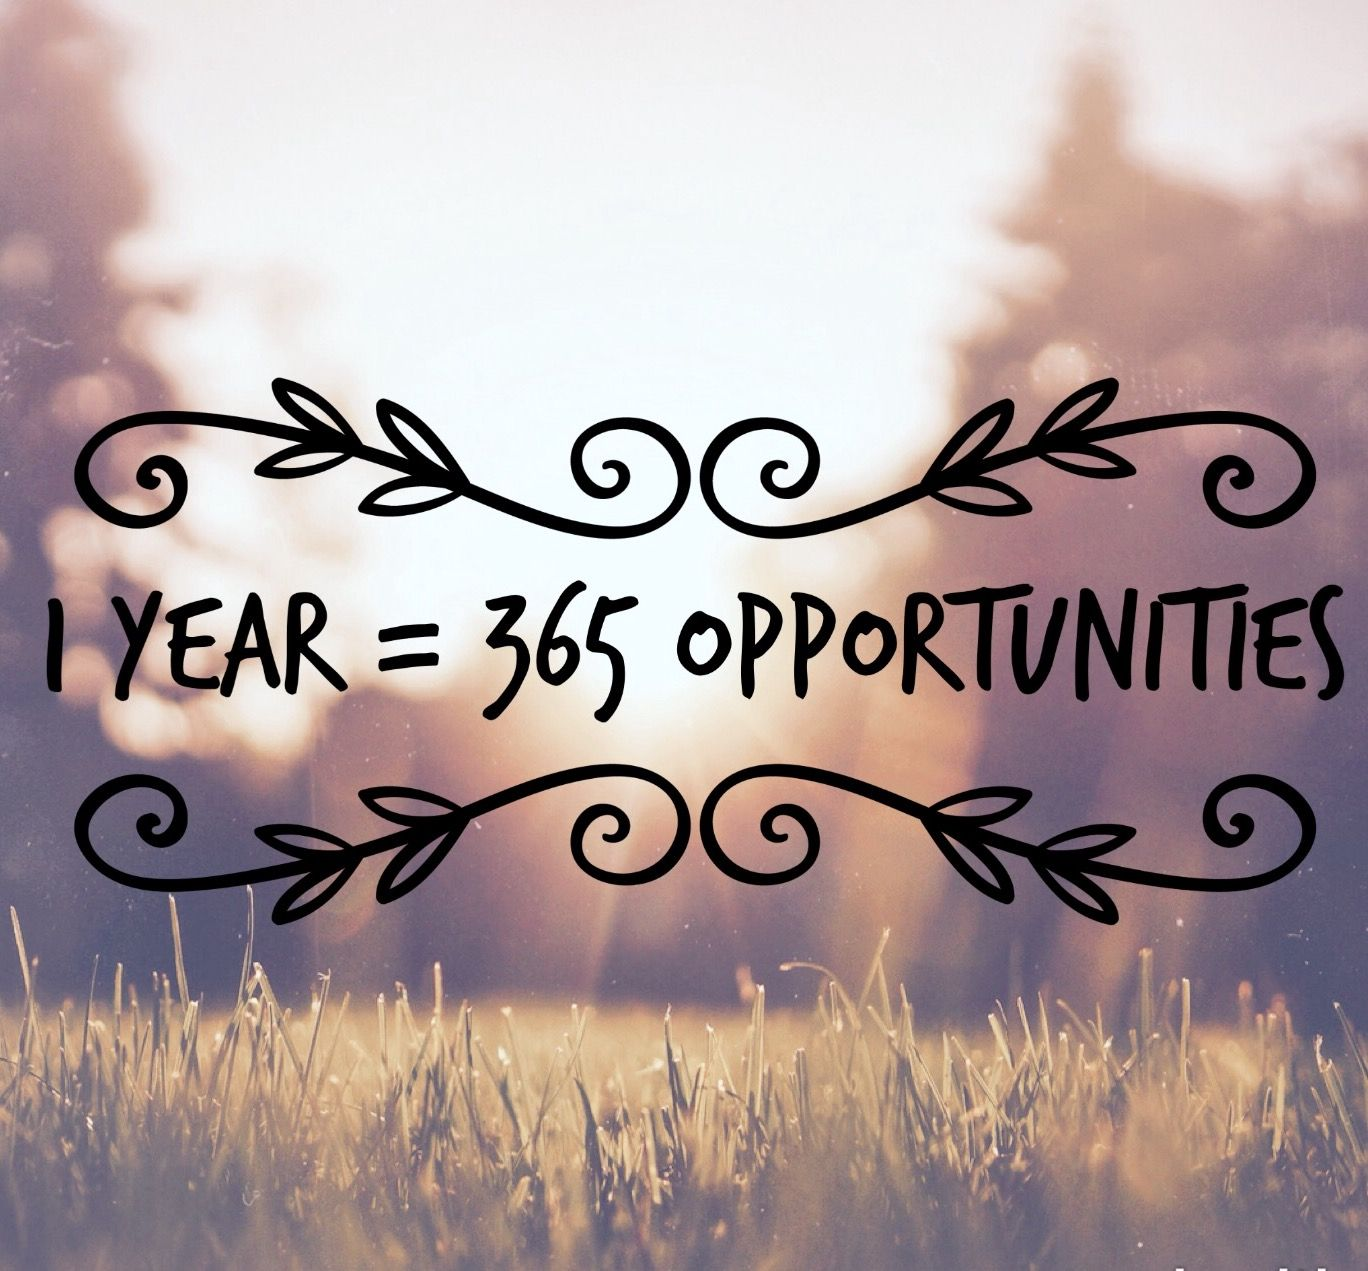 Opportunity Quotes Pinterest: 1 Year = 365 Opportunities